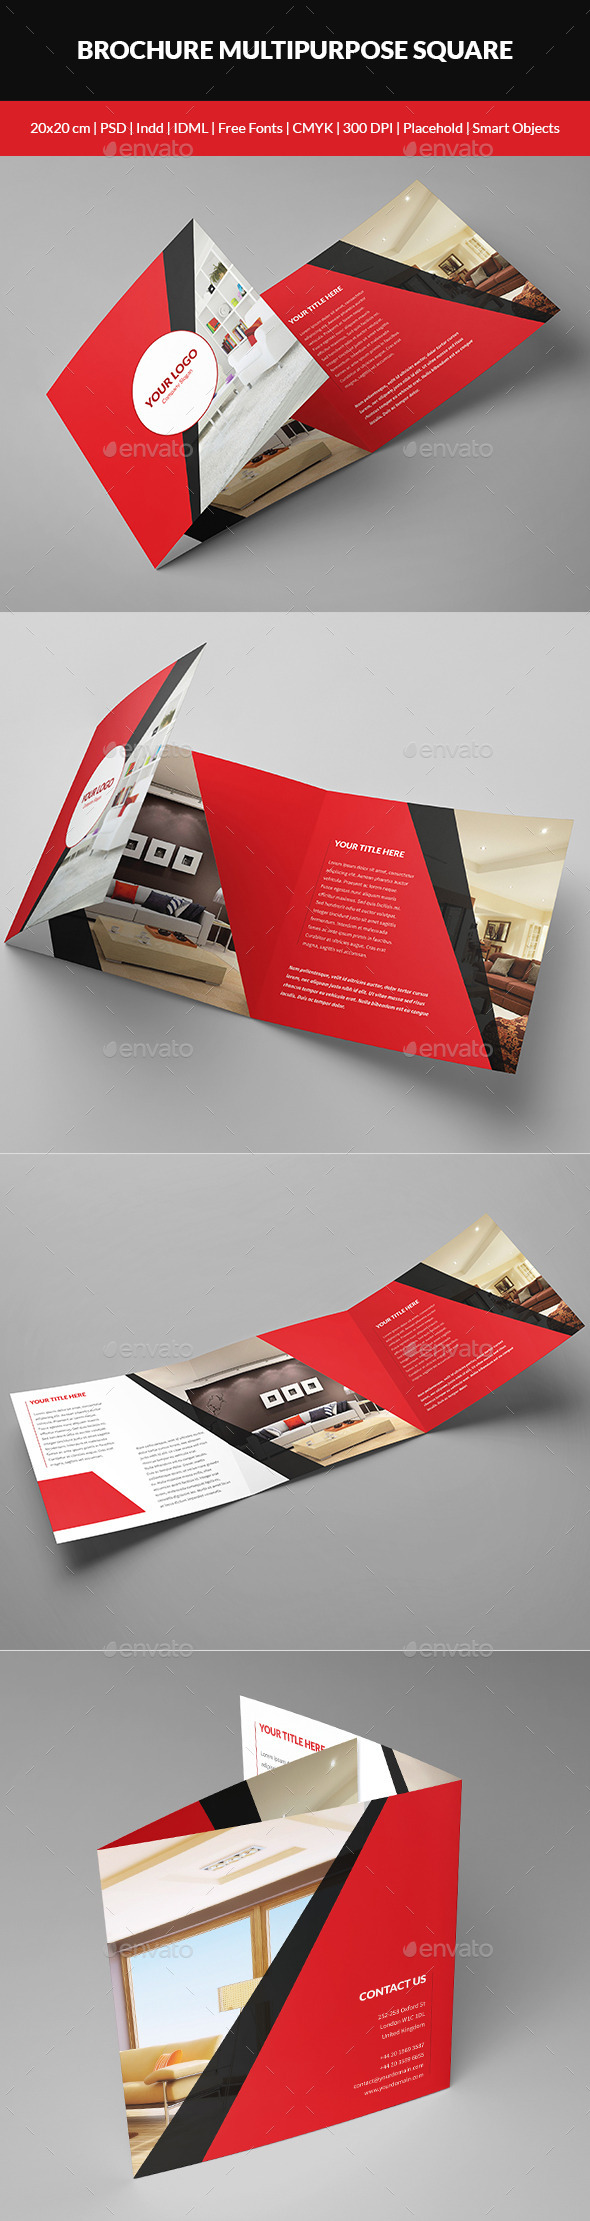 GraphicRiver Brochure Multipurpose Square 9558767